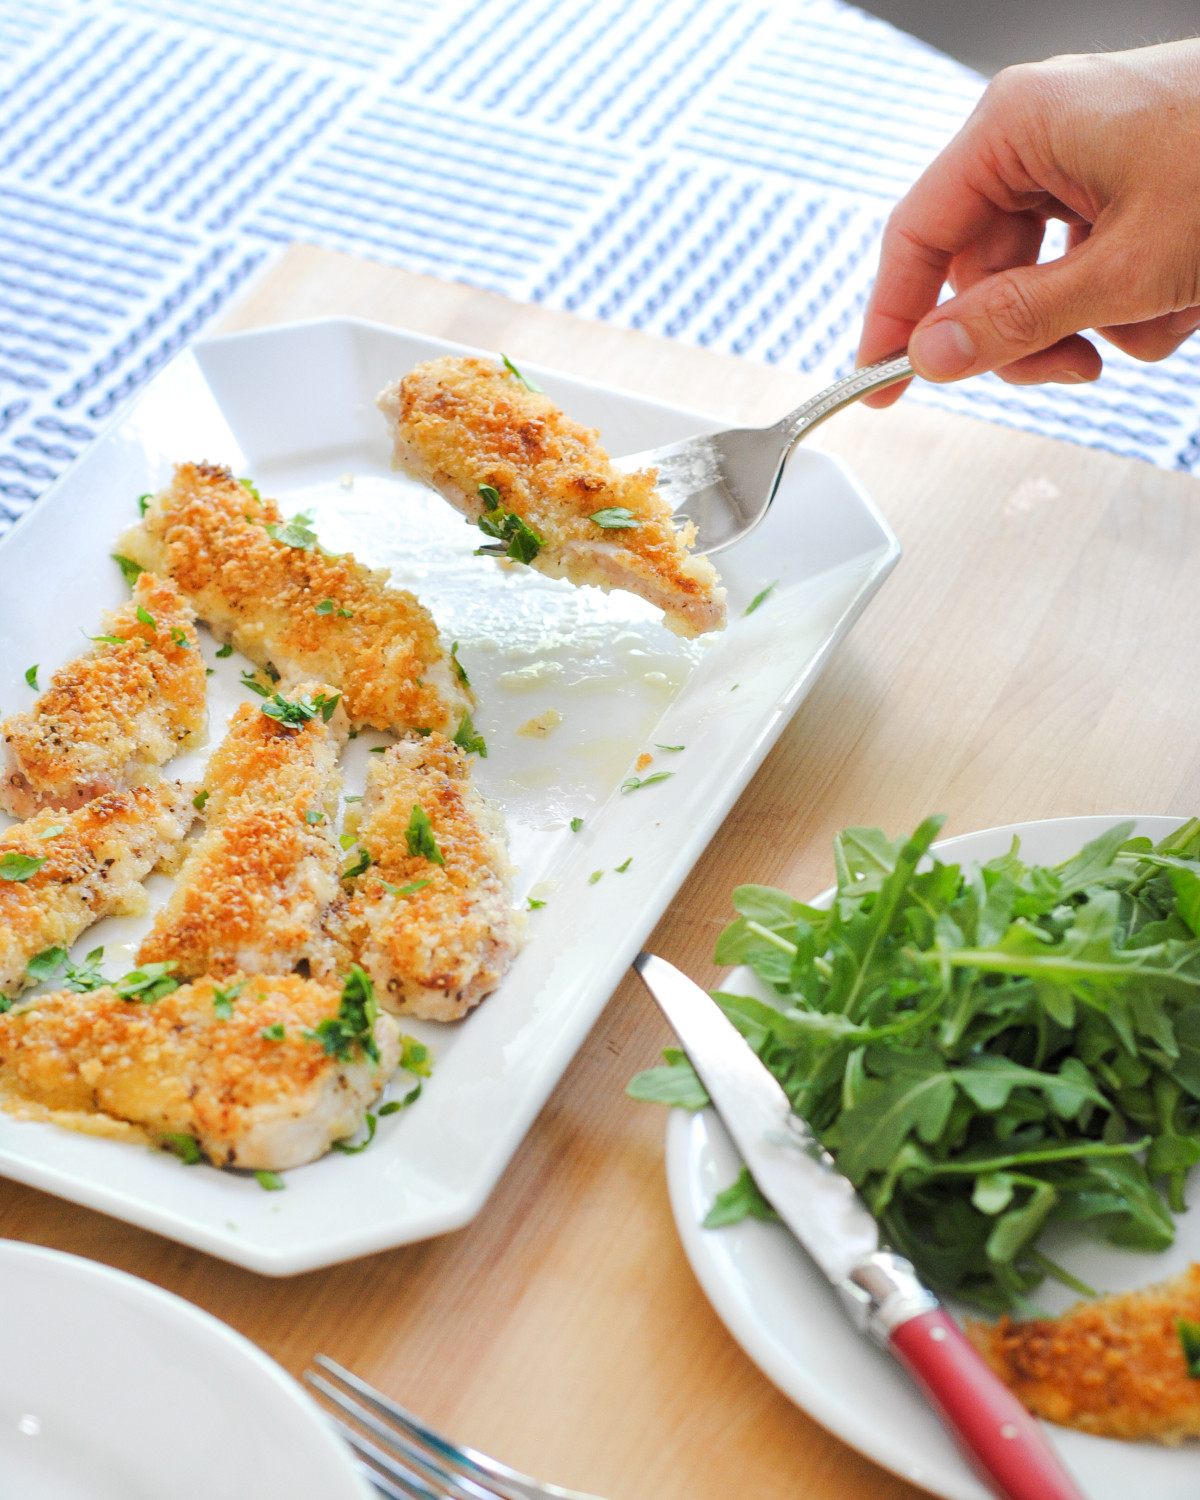 Baked Breaded Chicken Cutlets  Easy Baked Crispy Chicken Cutlets Recipe The Chronicles